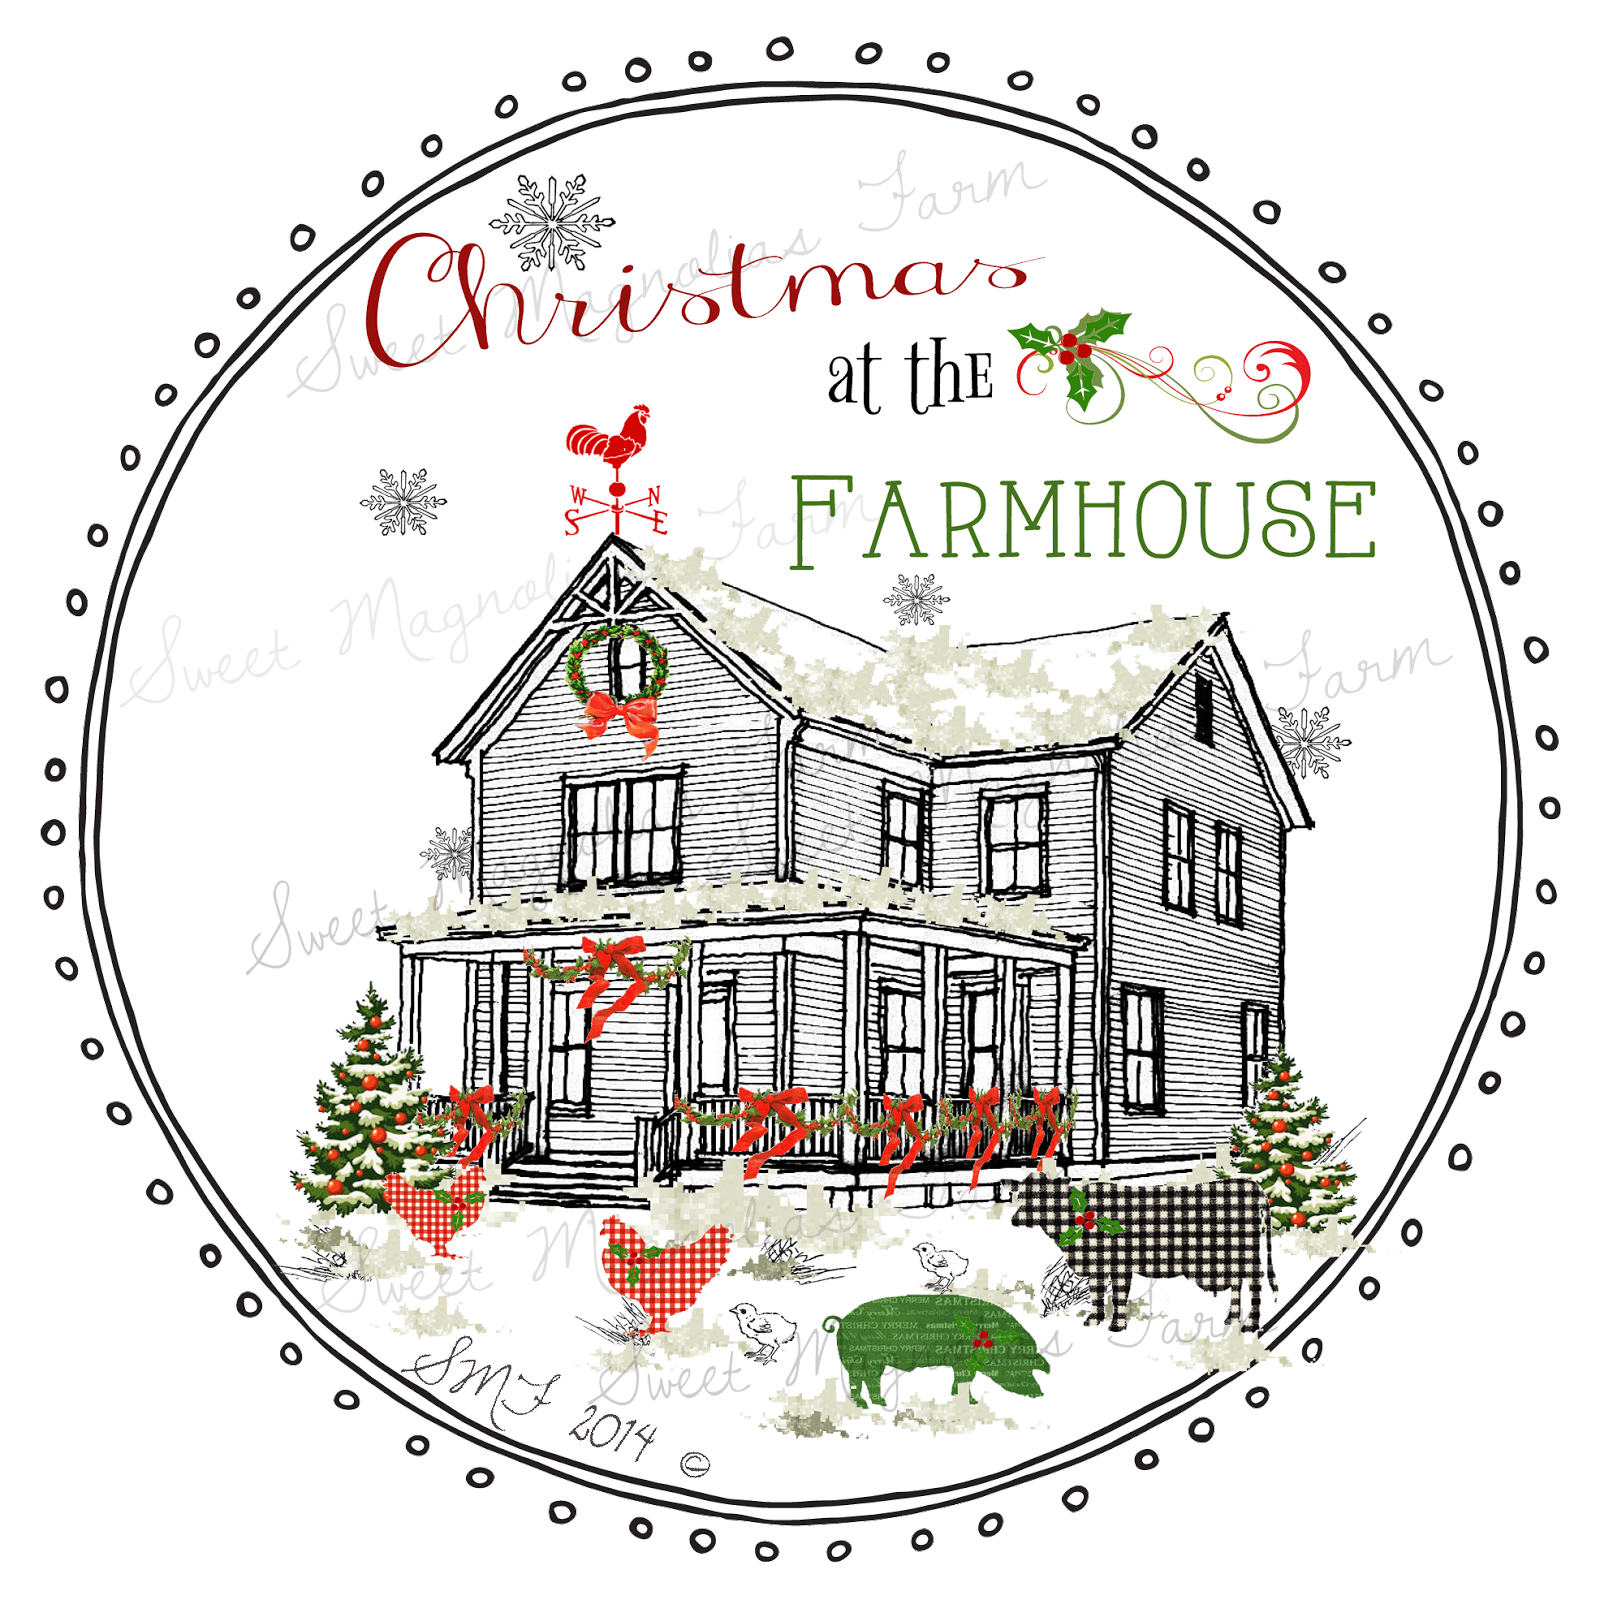 joey + rory a farmhouse christmas - wlrtradio.com